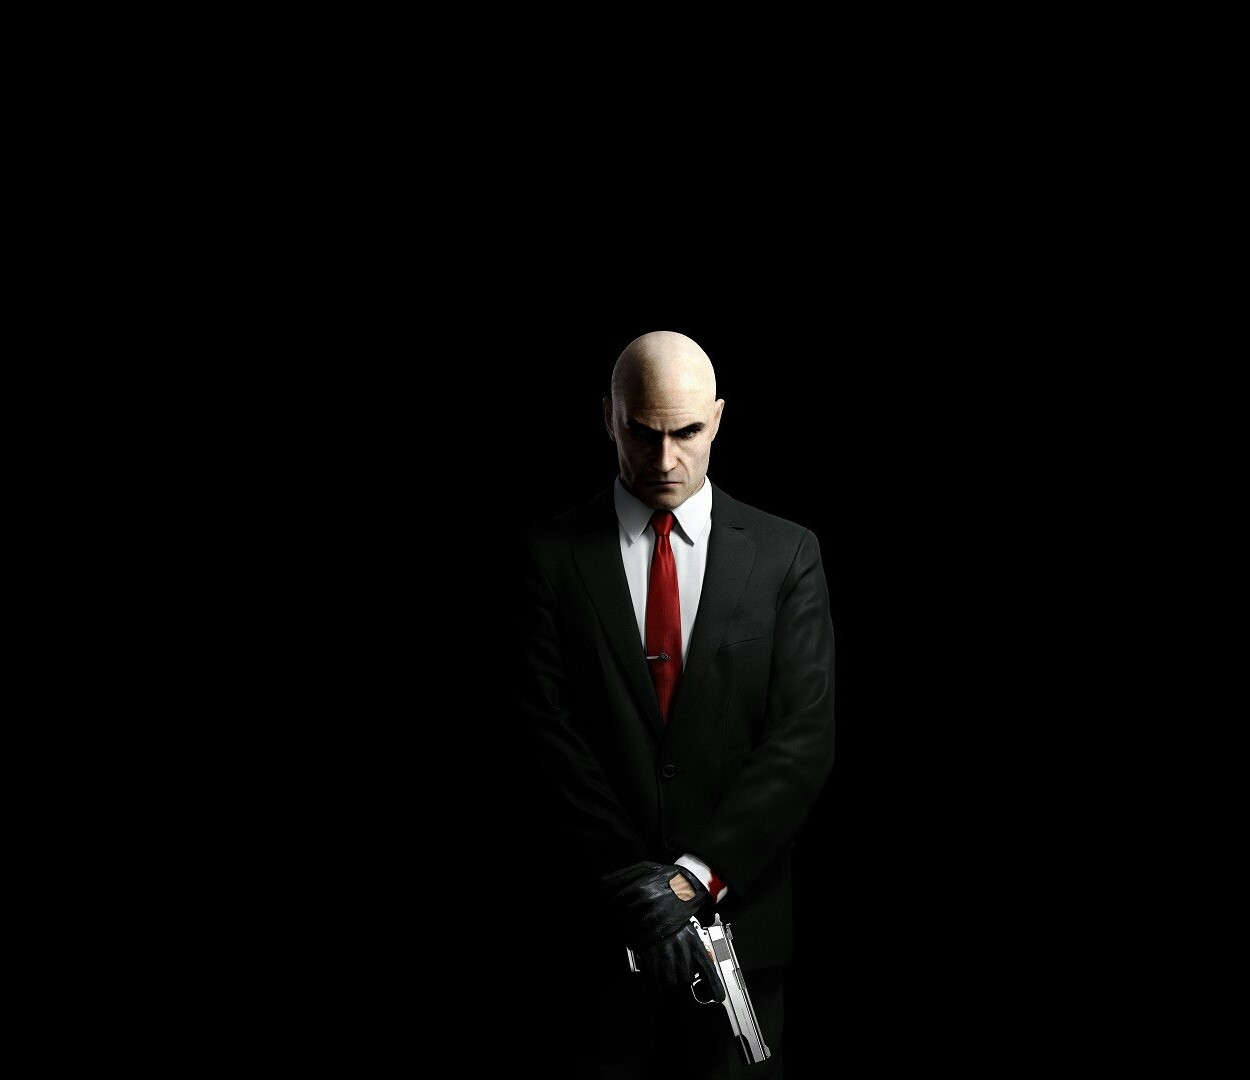 Hitman Wallpaper  Hitman Wallpaper